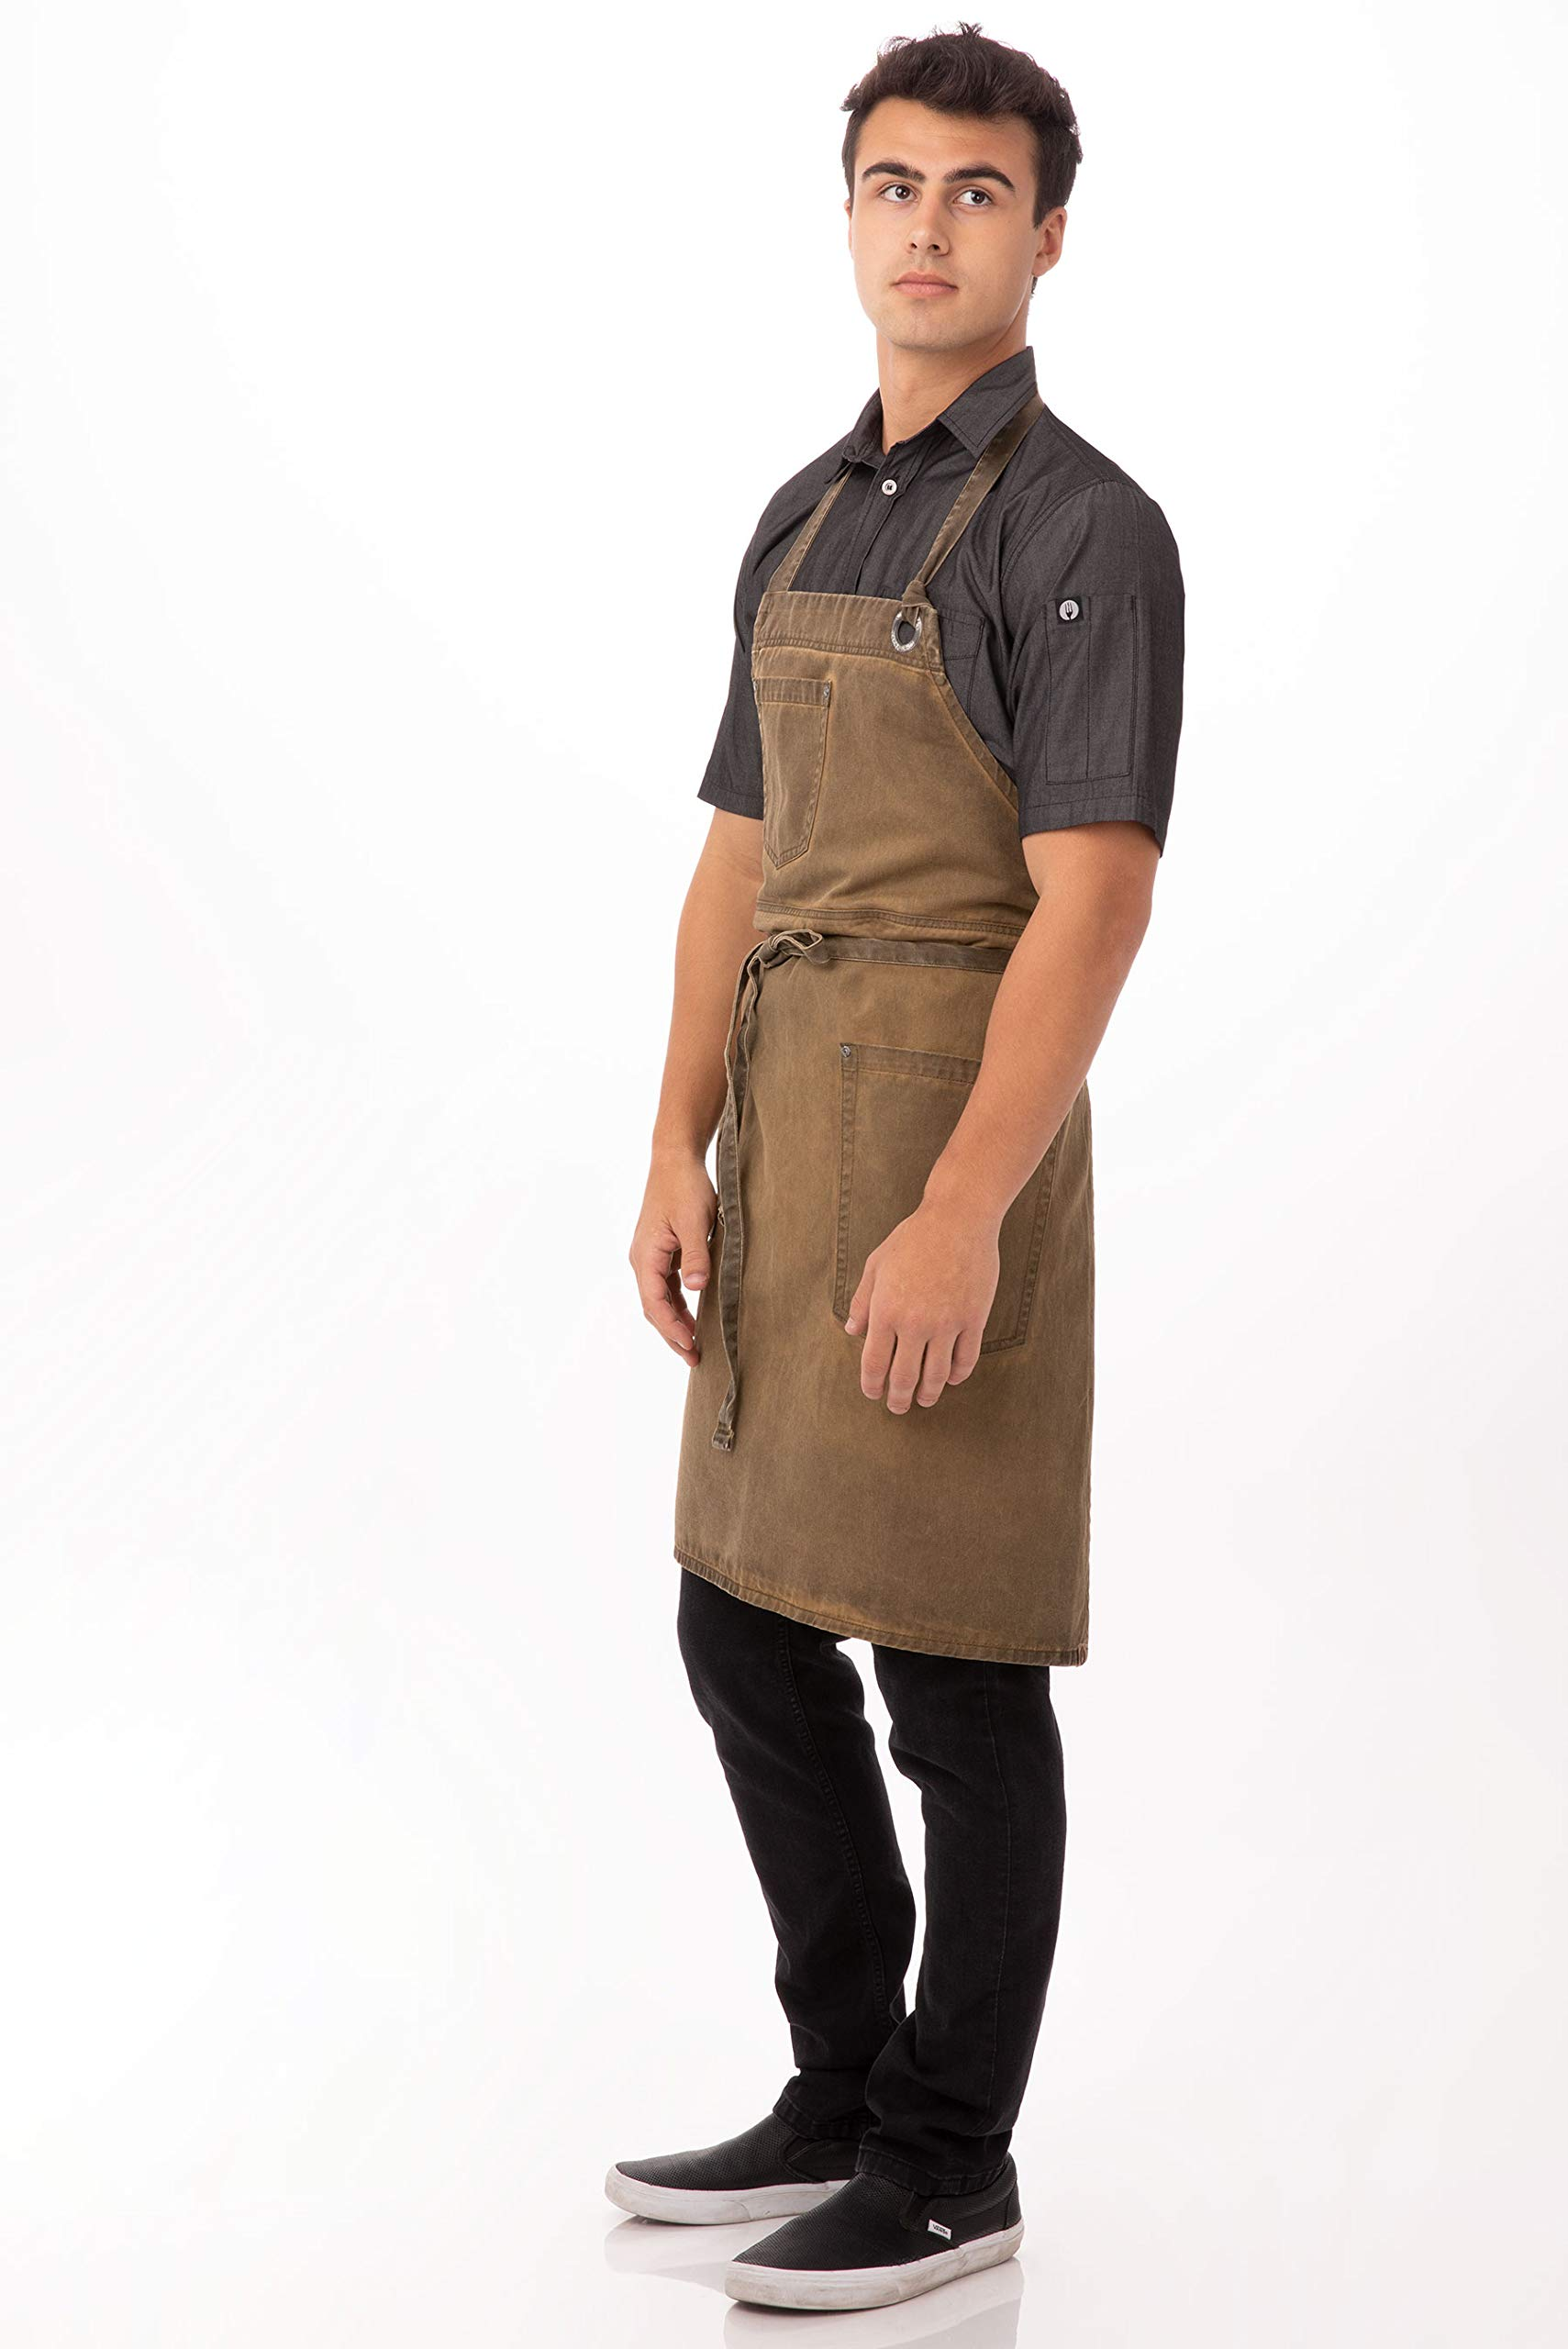 Chef Works Dorset Bib Apron, Golden Brown, One Size by Chef Works